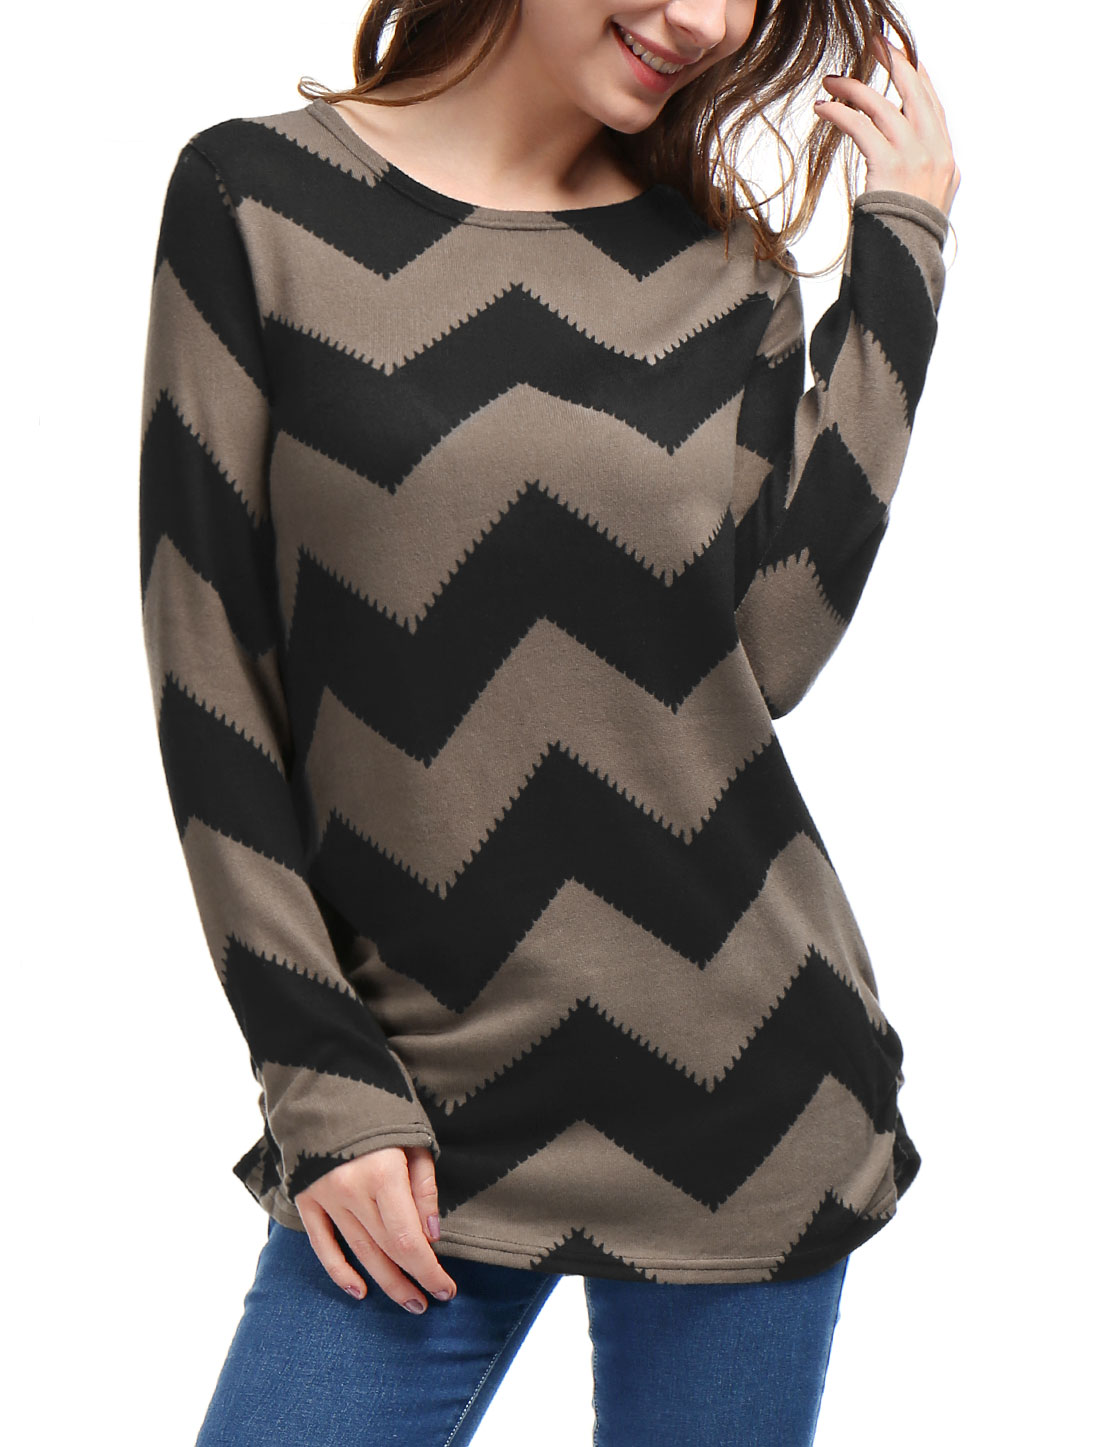 Woman Zig-Zag Pattern Knitted Relax Fit Tunic Top Black Brown M